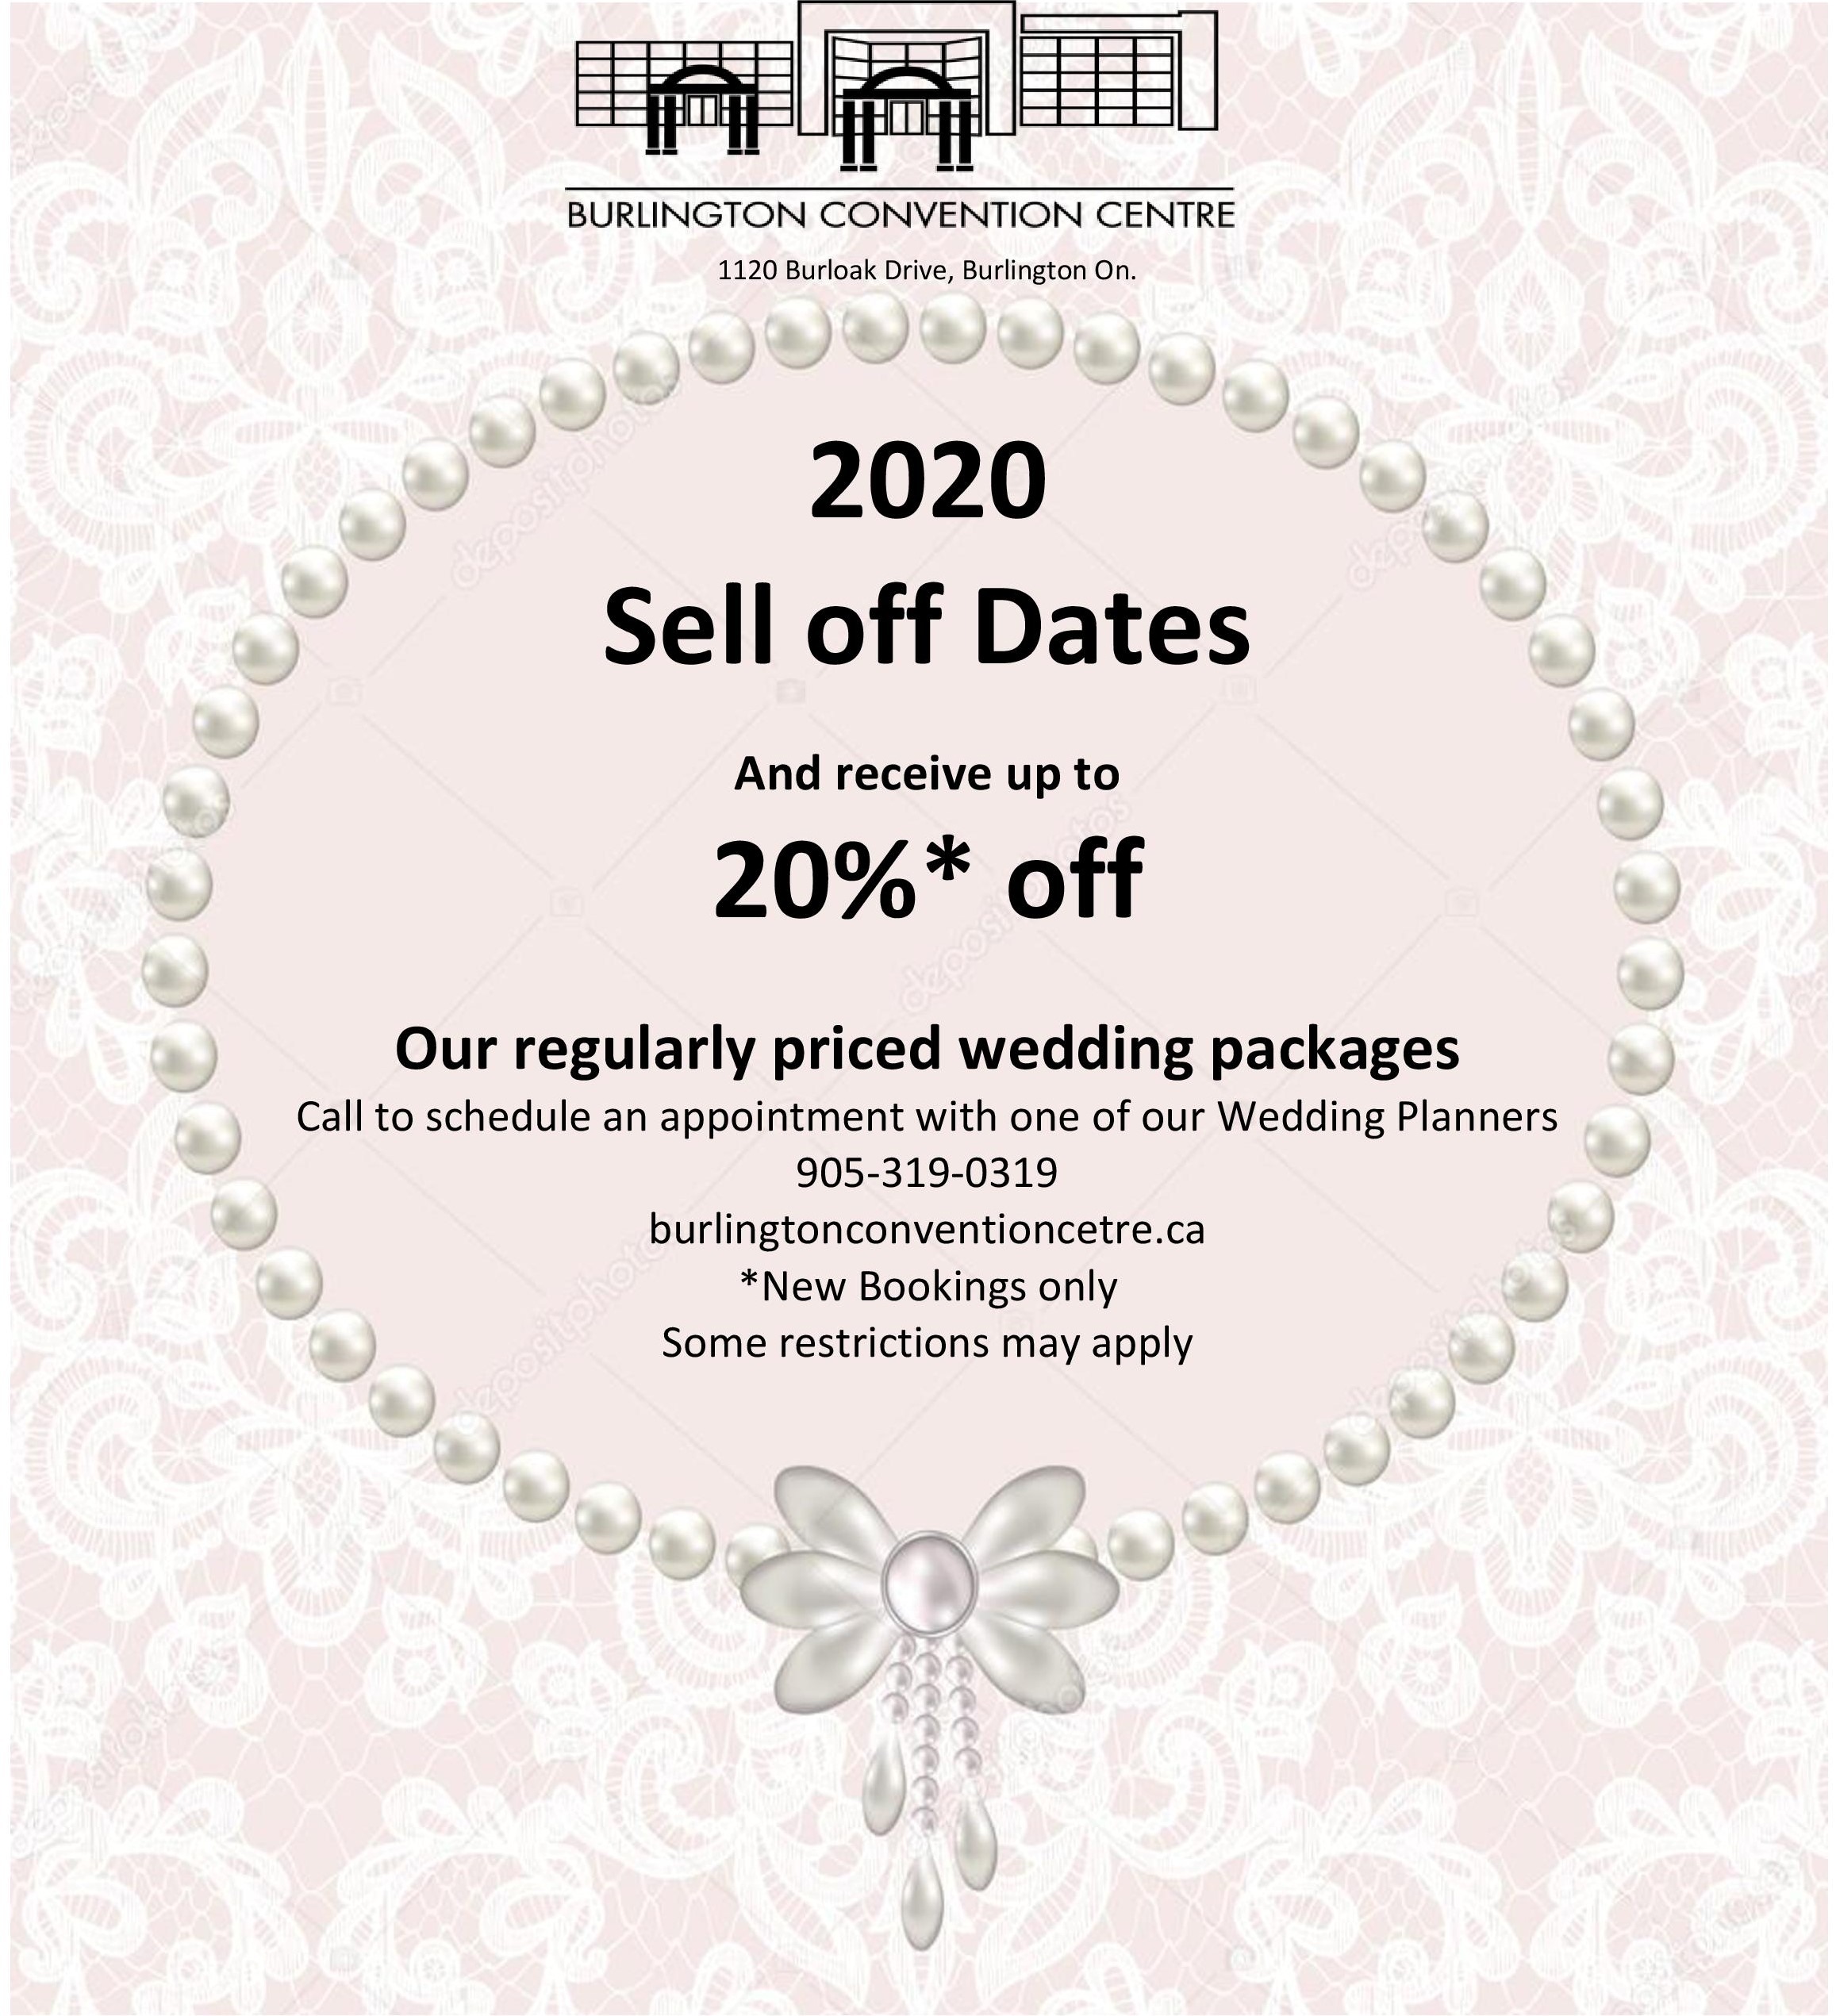 wedding venue sell-offs for 2020 in burlington oakville hamilton